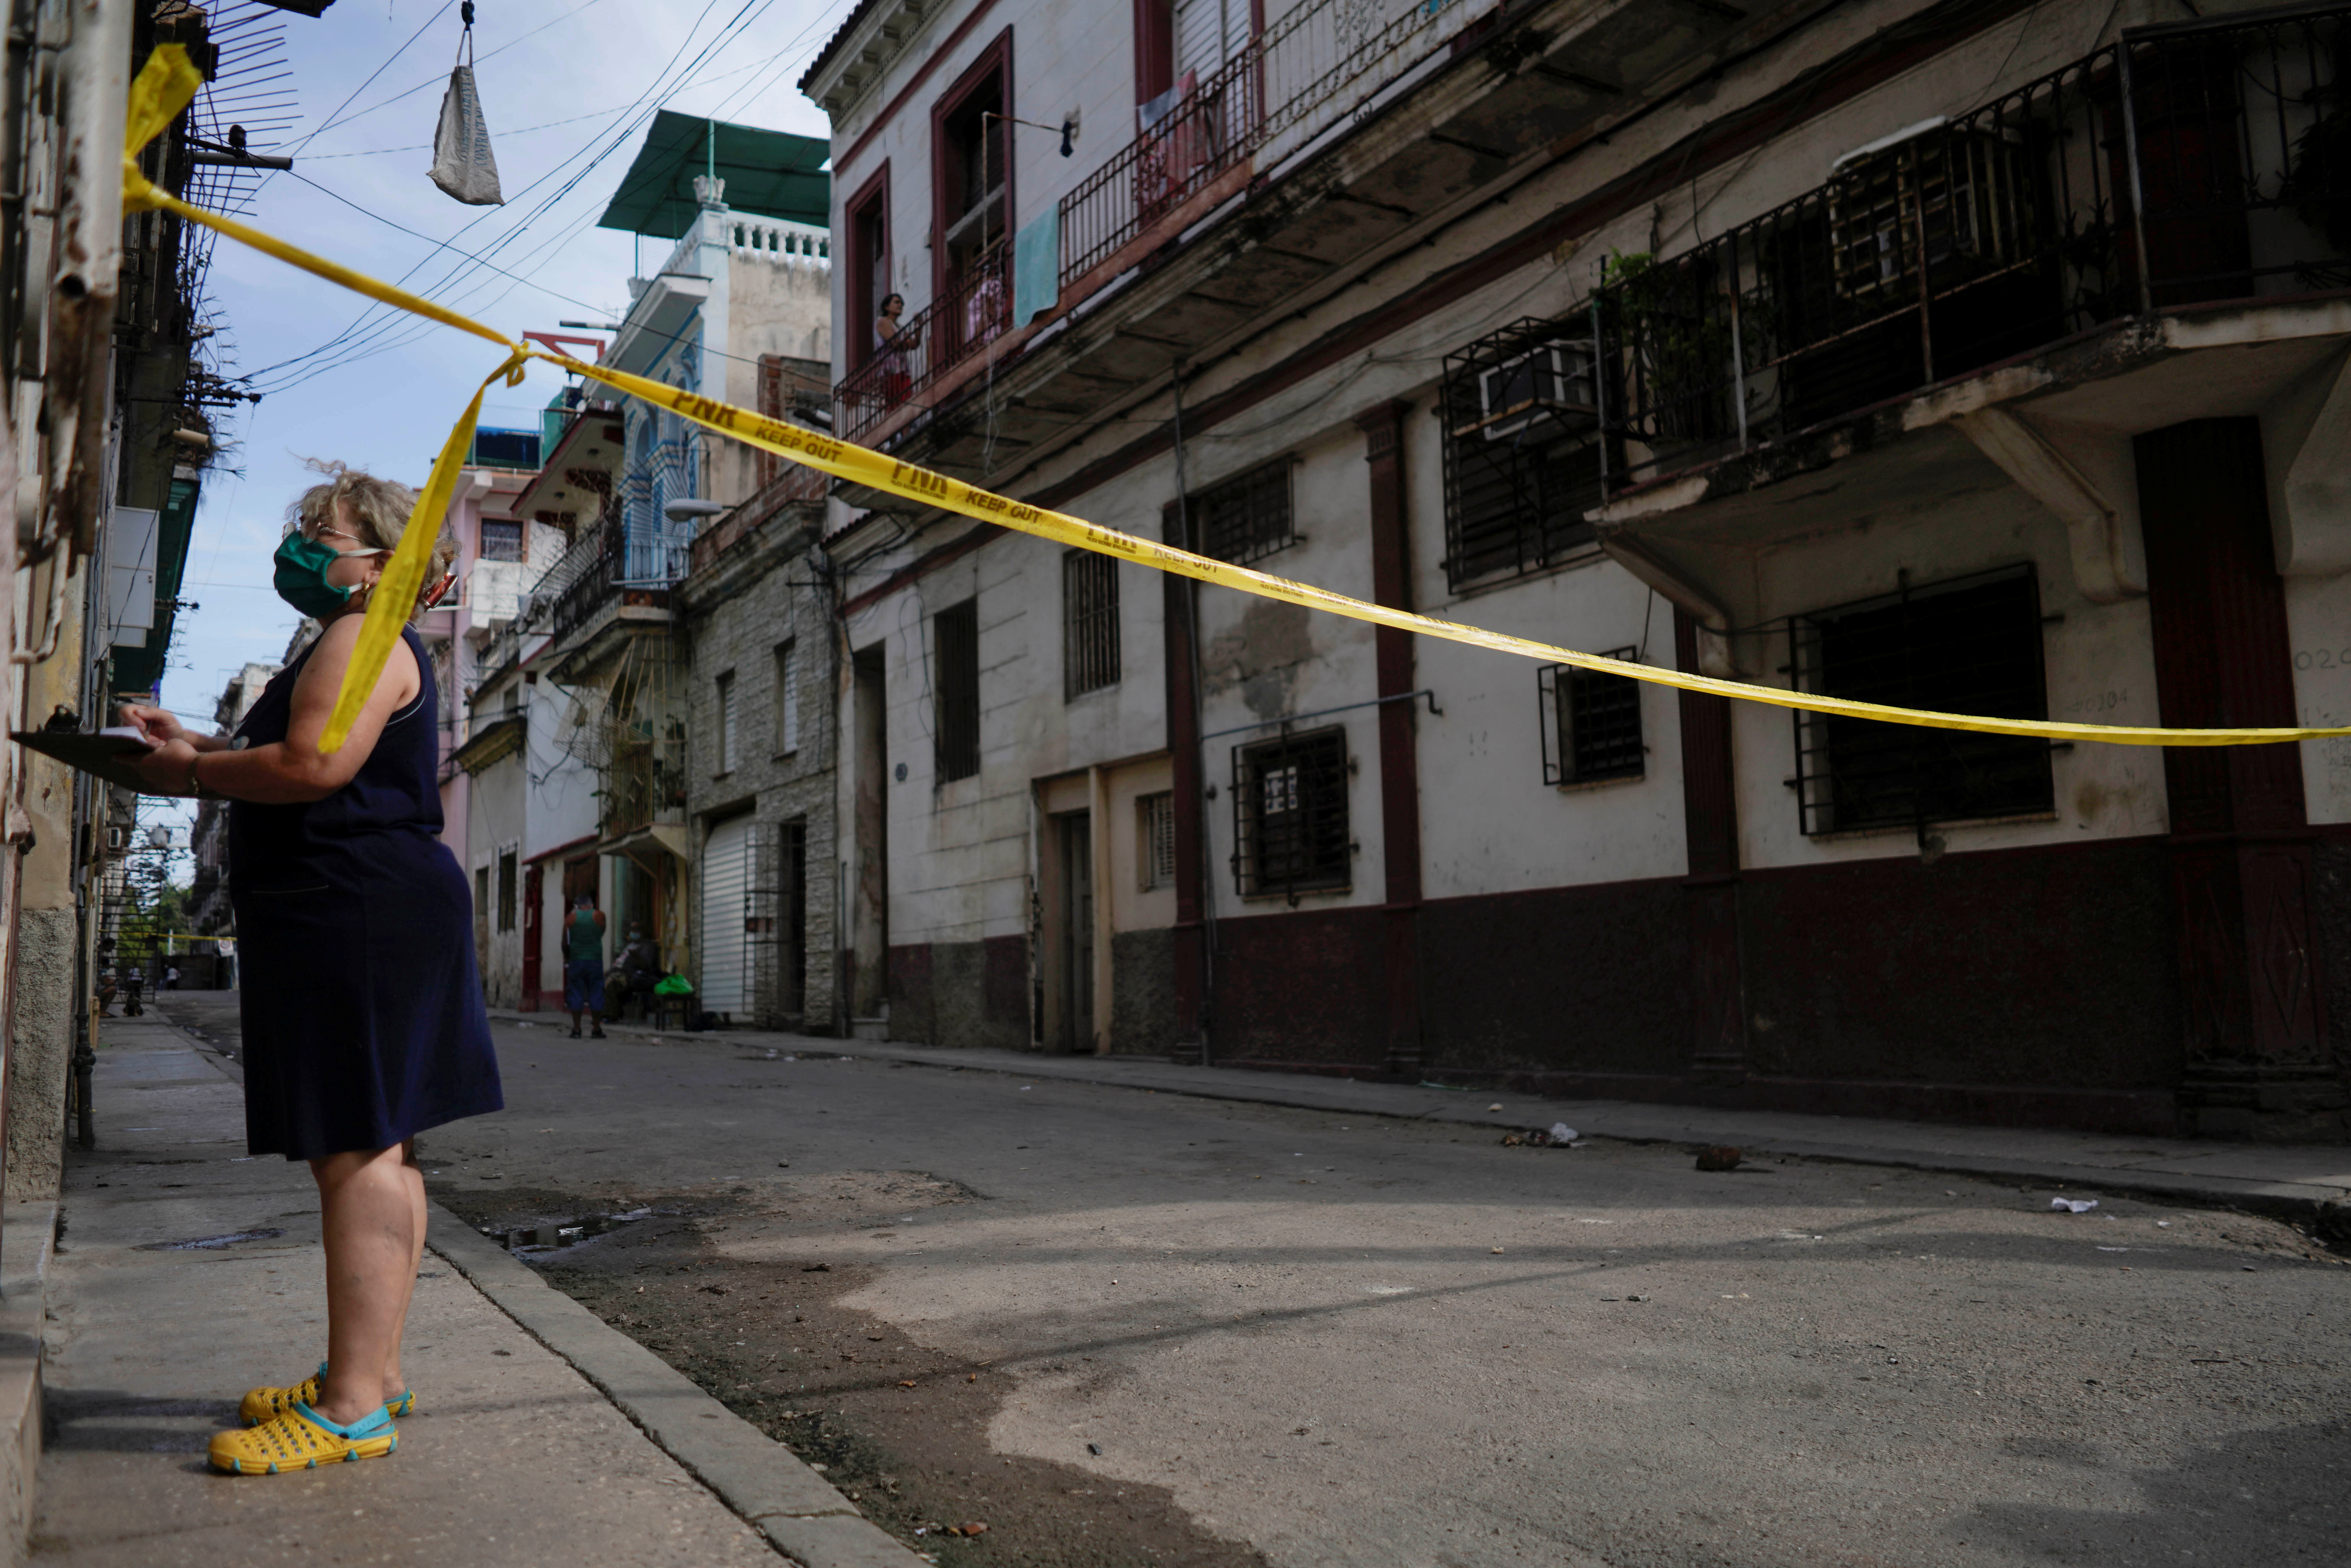 A health worker asks questions in a quarantine area amid concerns about the spread of the coronavirus disease (COVID-19) in Havana, Cuba, April 8, 2021. Picture taken April 8, 2021. REUTERS/Alexandre Meneghini